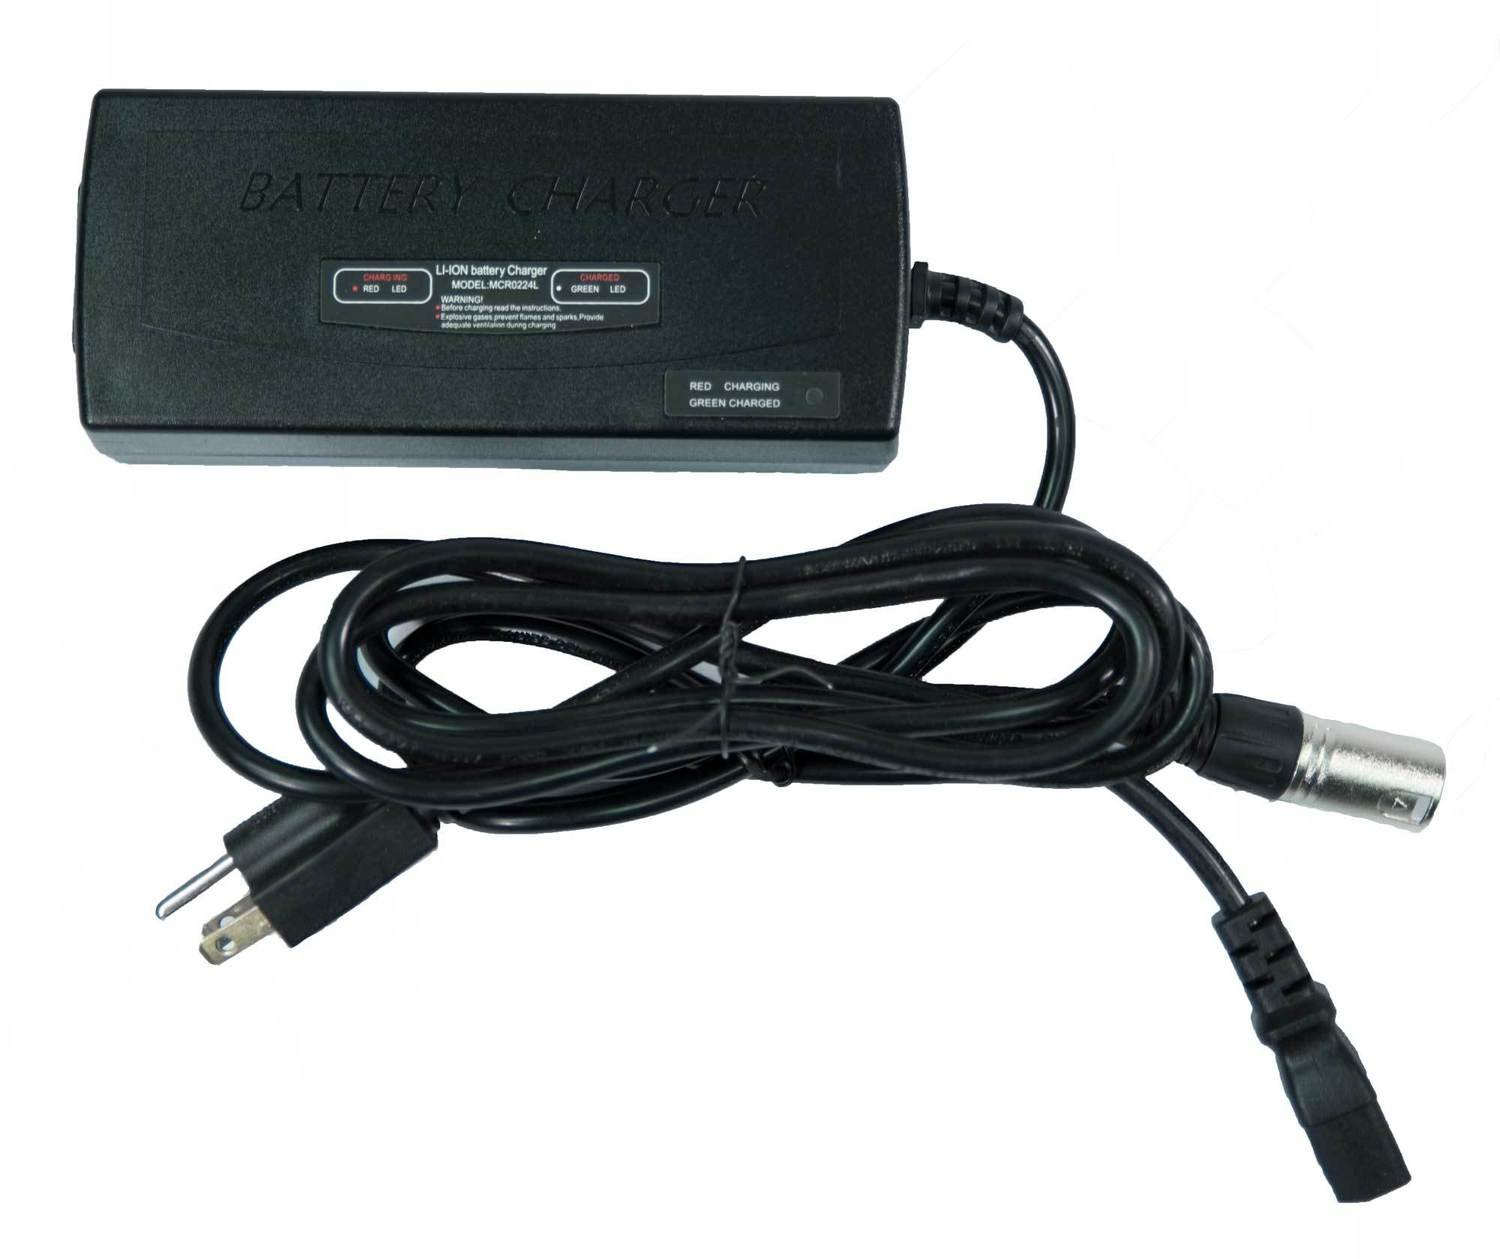 Battery Charger for Models using 10Ah Batteries